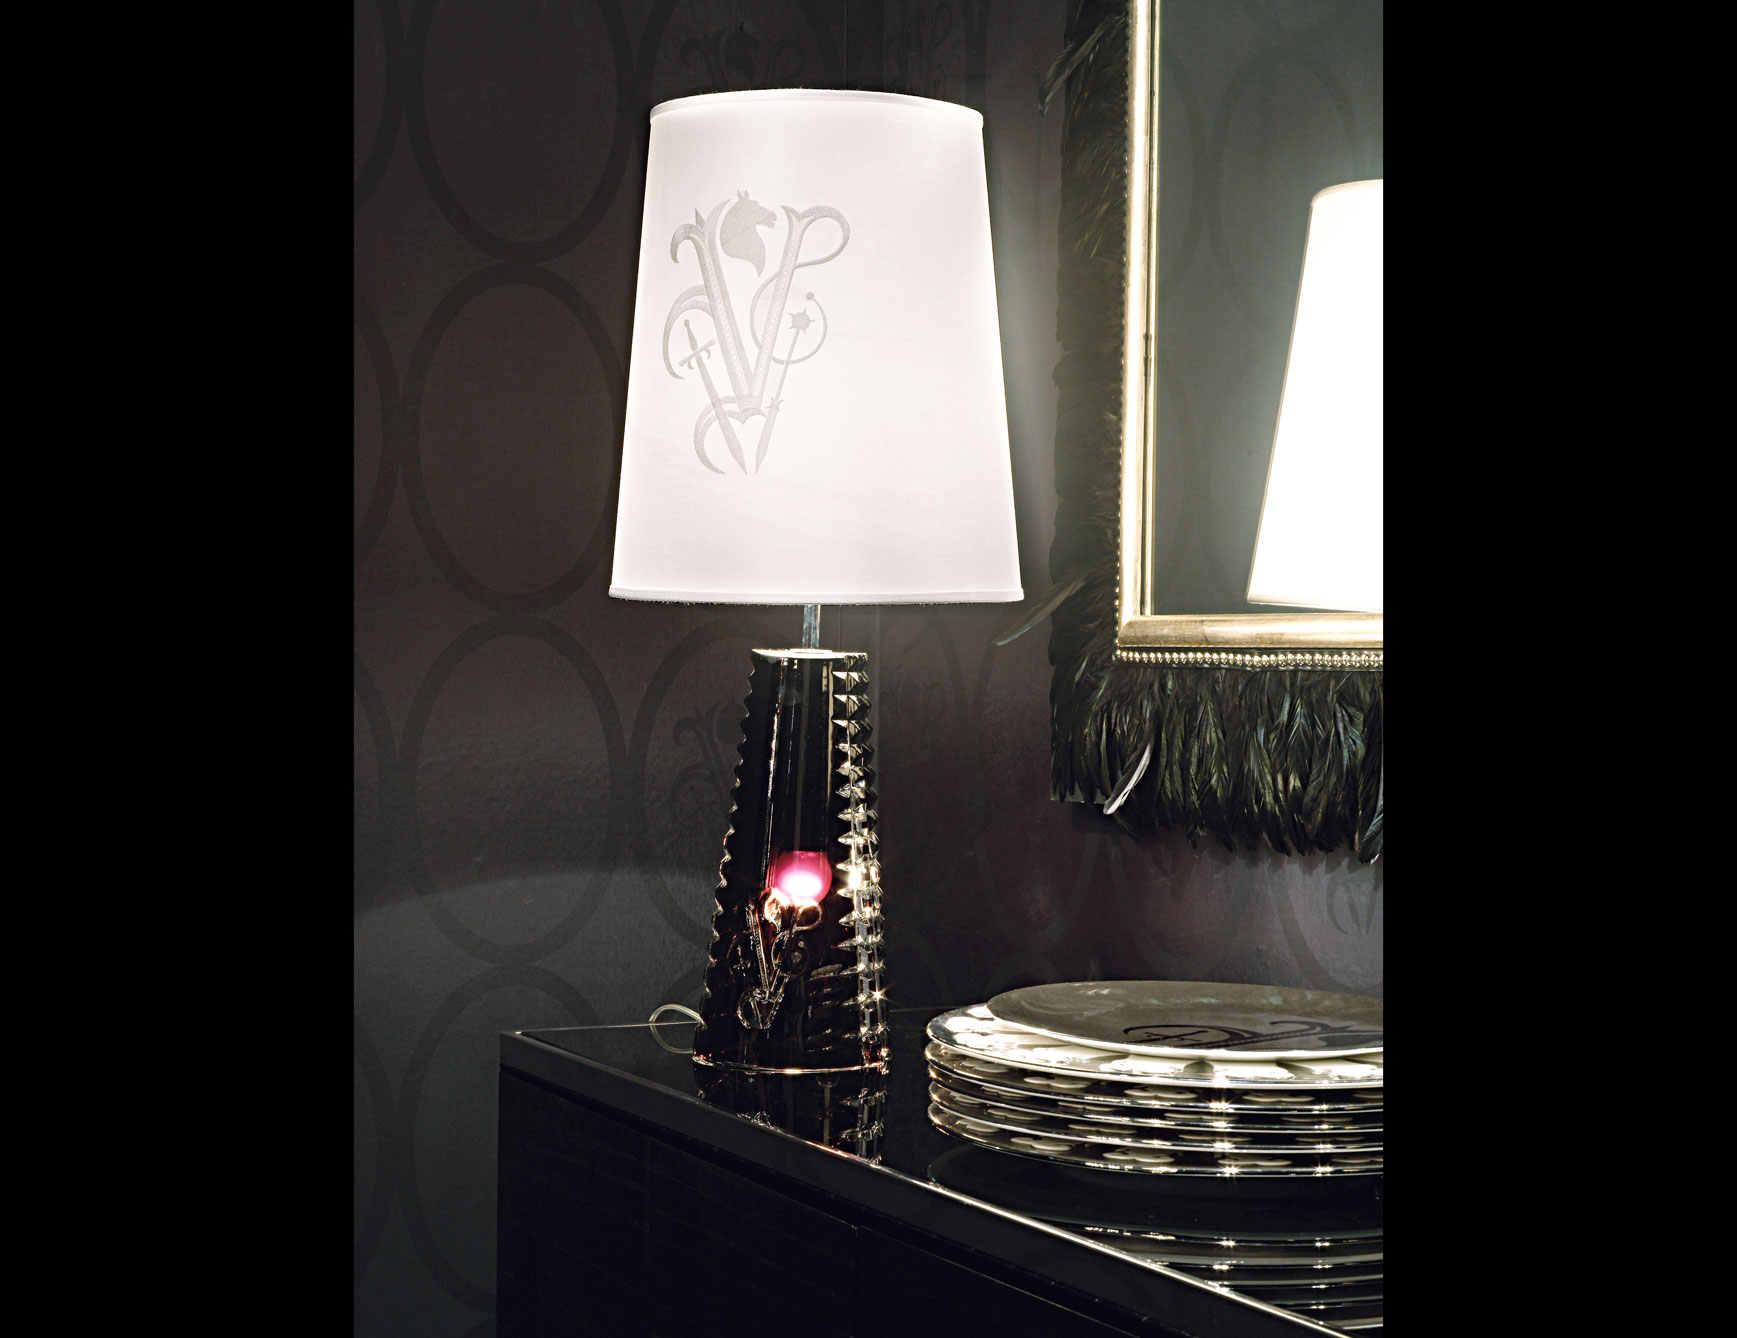 luxury table lamp design lamp design How to Choose the Perfect Table Lamp Design luxury table lamp design